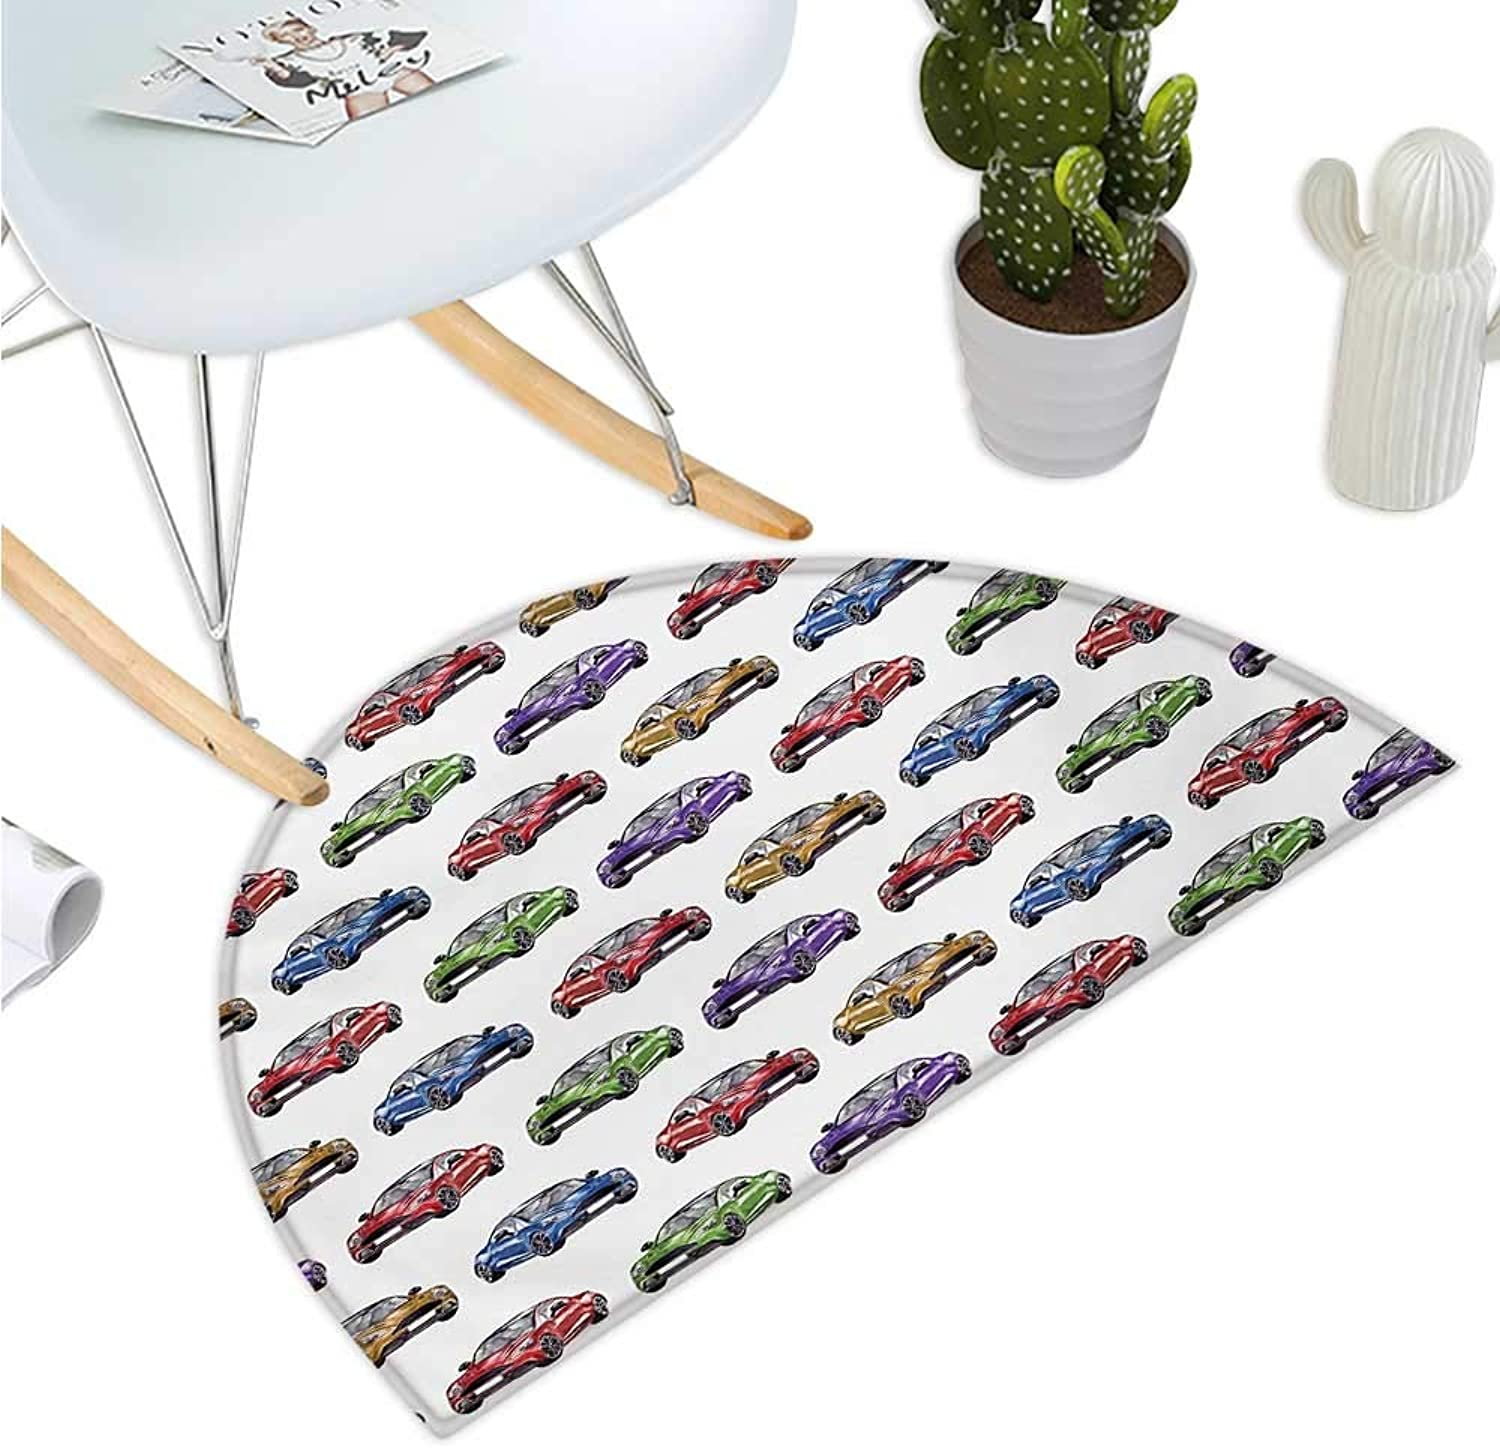 Cars Semicircular Cushion colorful Speedy Sports Cars with Different Angles Hand Drawn Fast Vehicles Bathroom Mat H 39.3  xD 59  Red Fern Green Purple